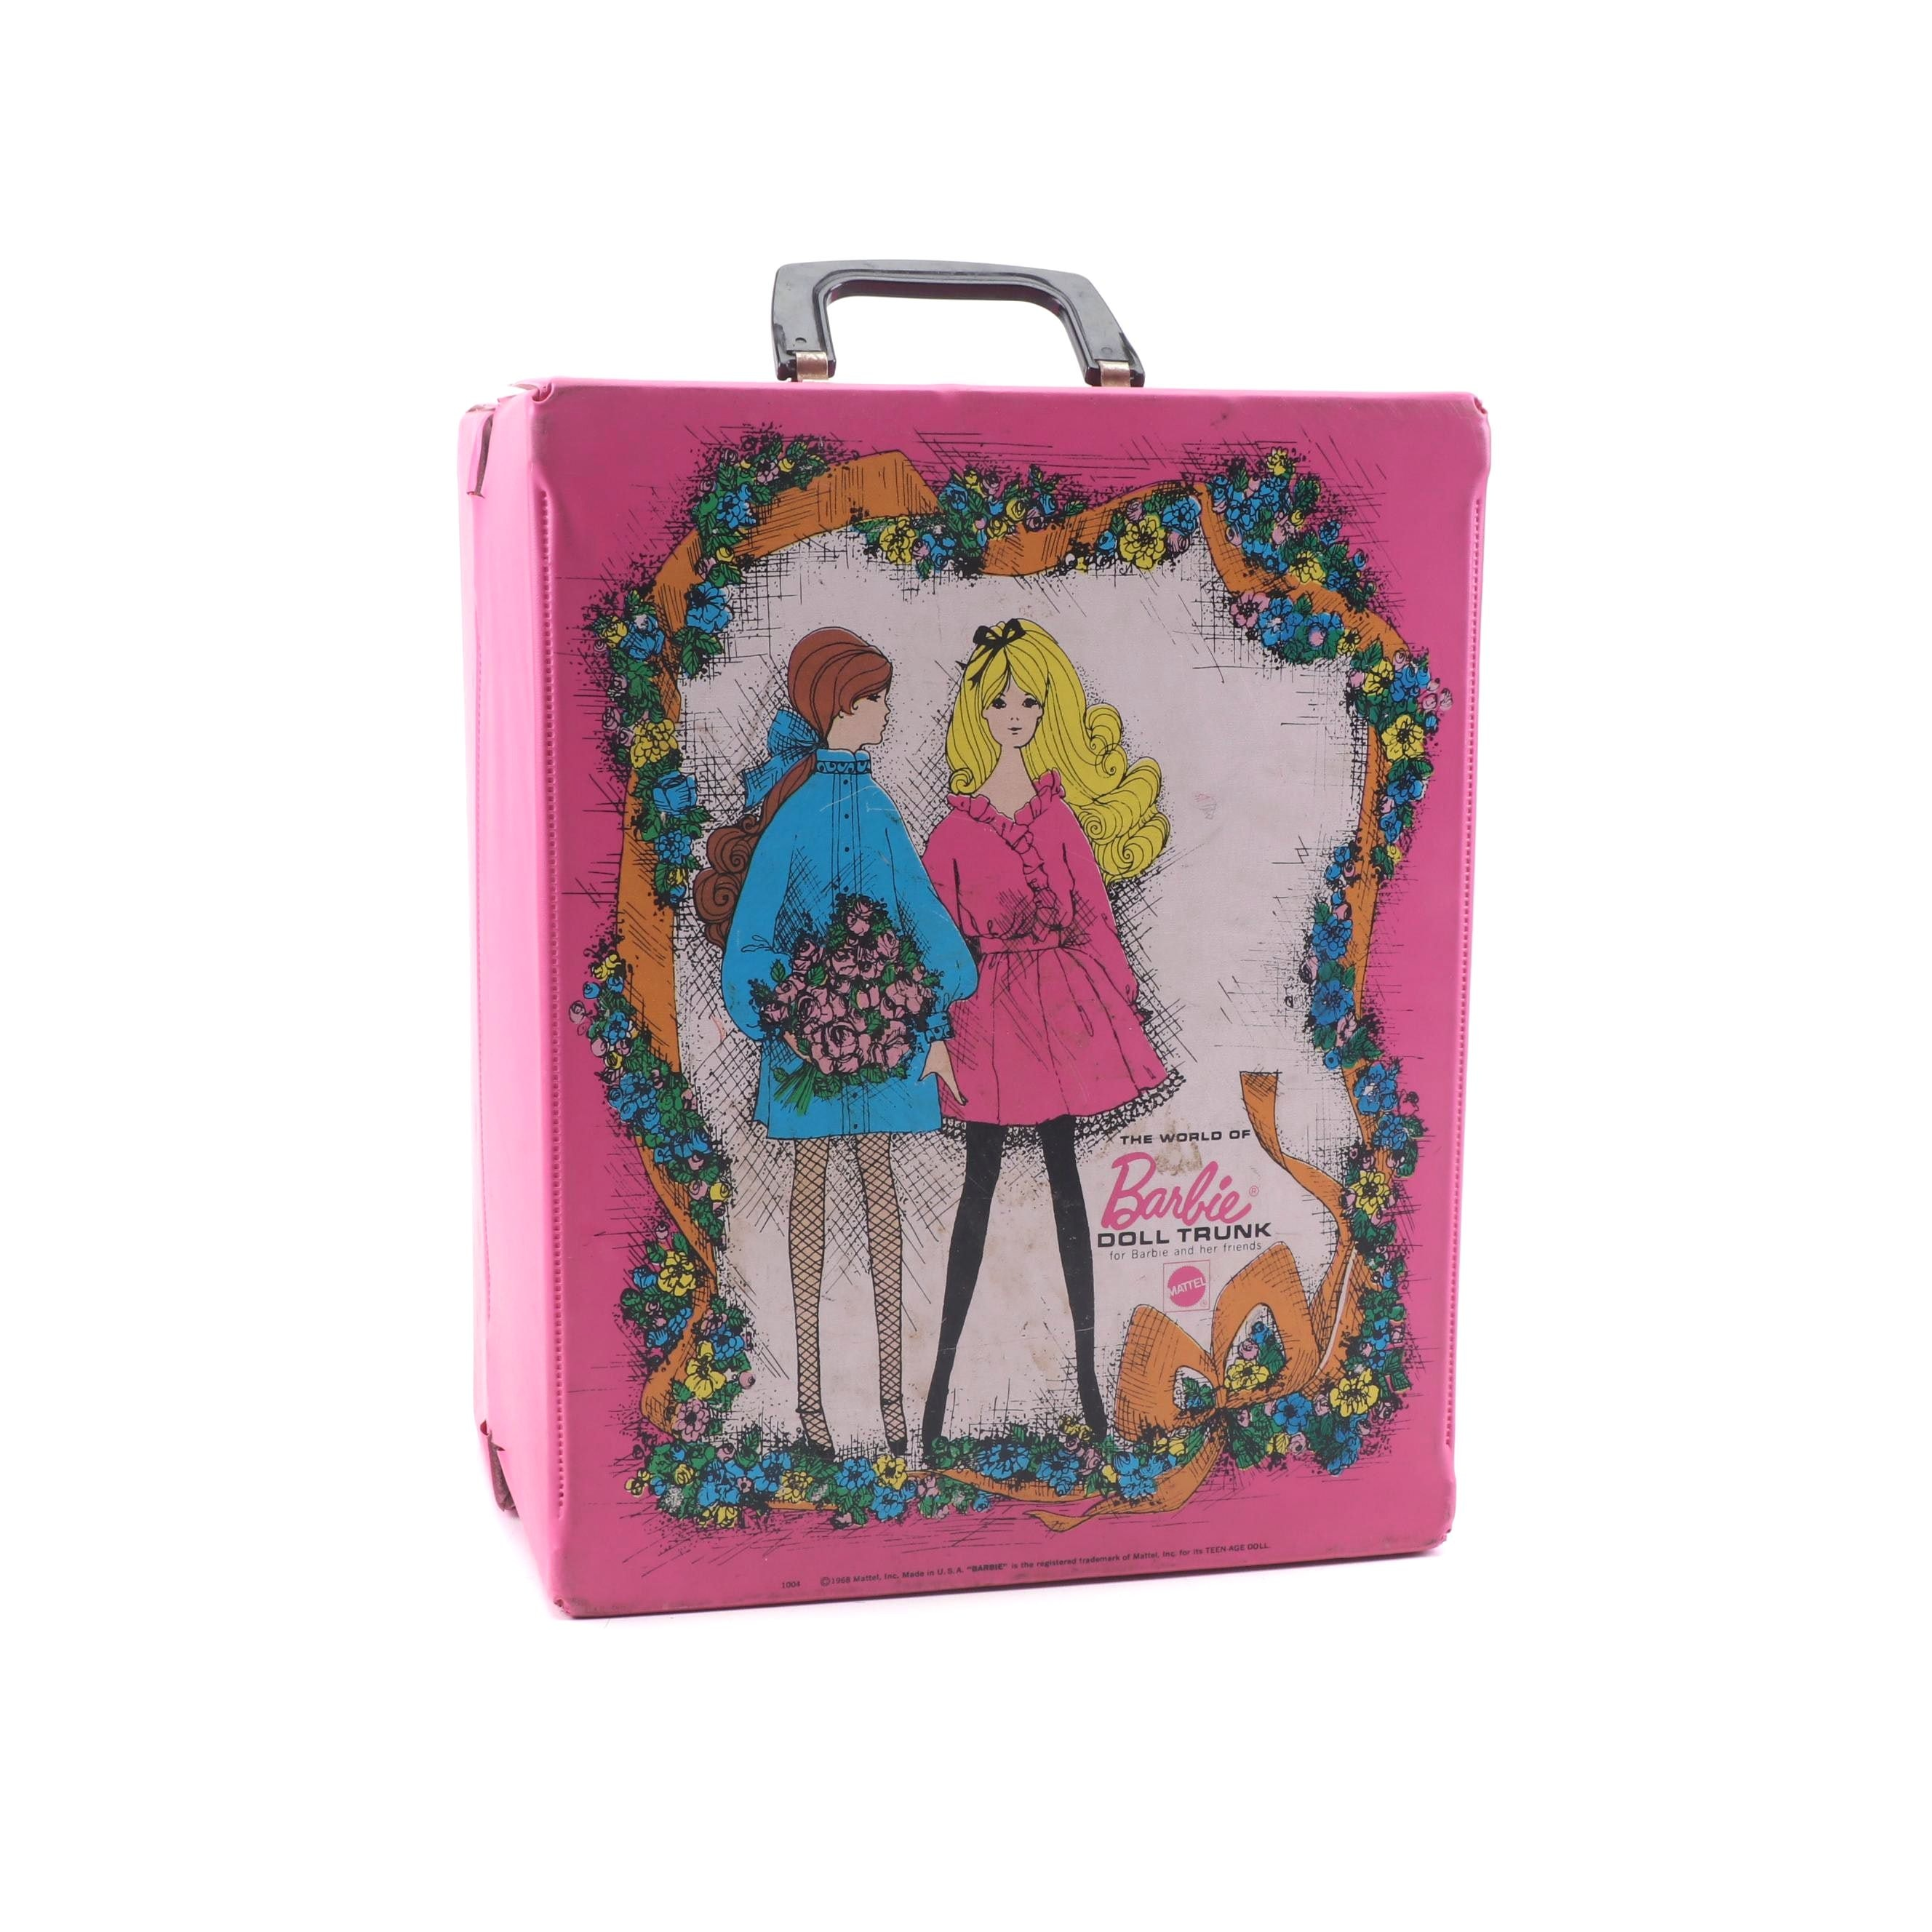 Barbie Dolls, Accessories, and Case from the 1960's and 70's